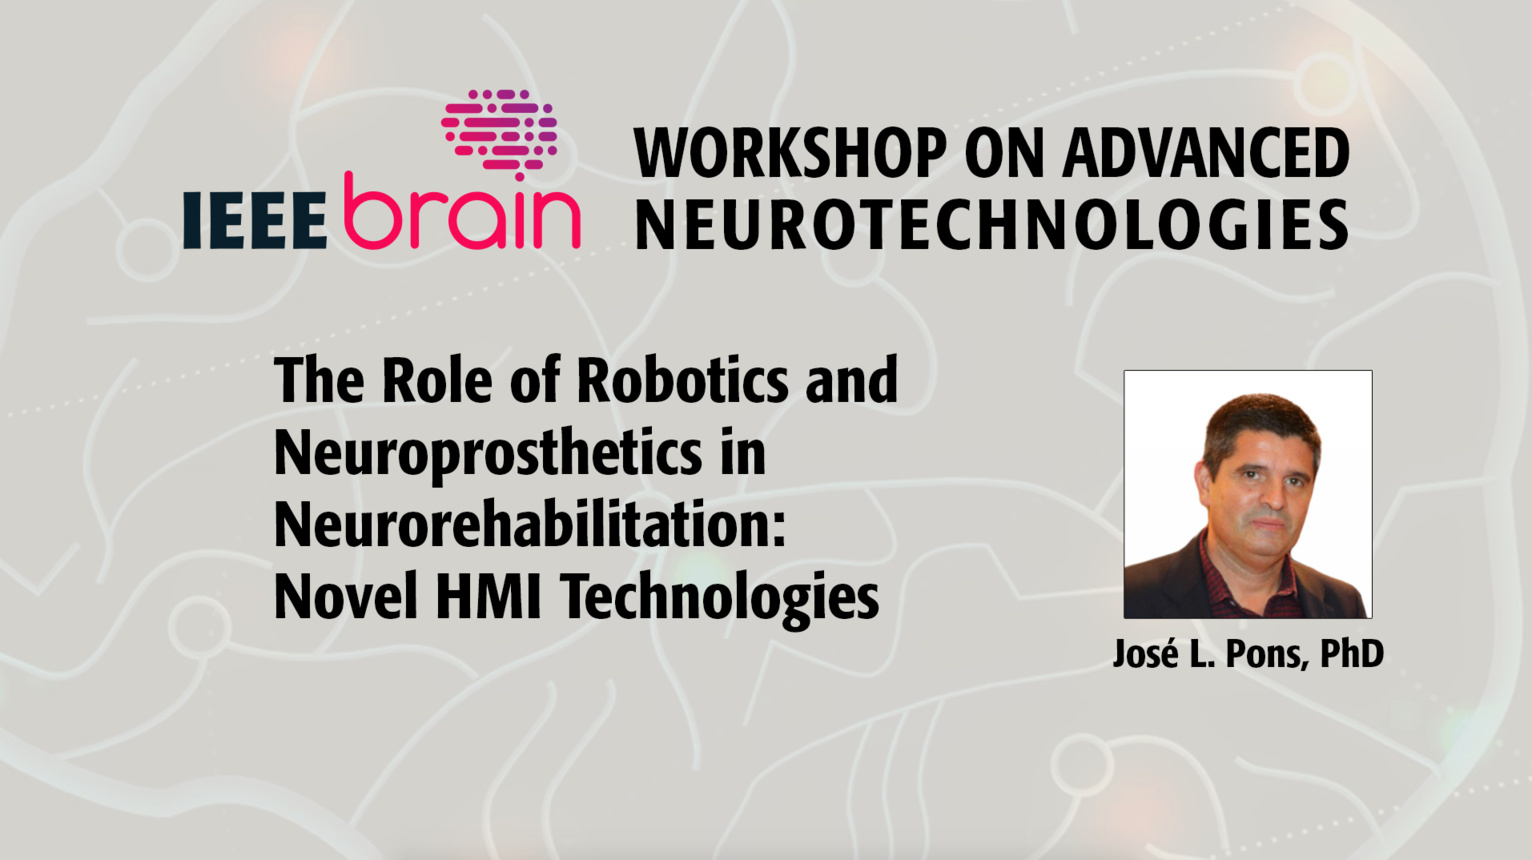 The role of robotics and neuroprosthetics in neurorehabilitation: novel HMI technologies - IEEE Brain Workshop